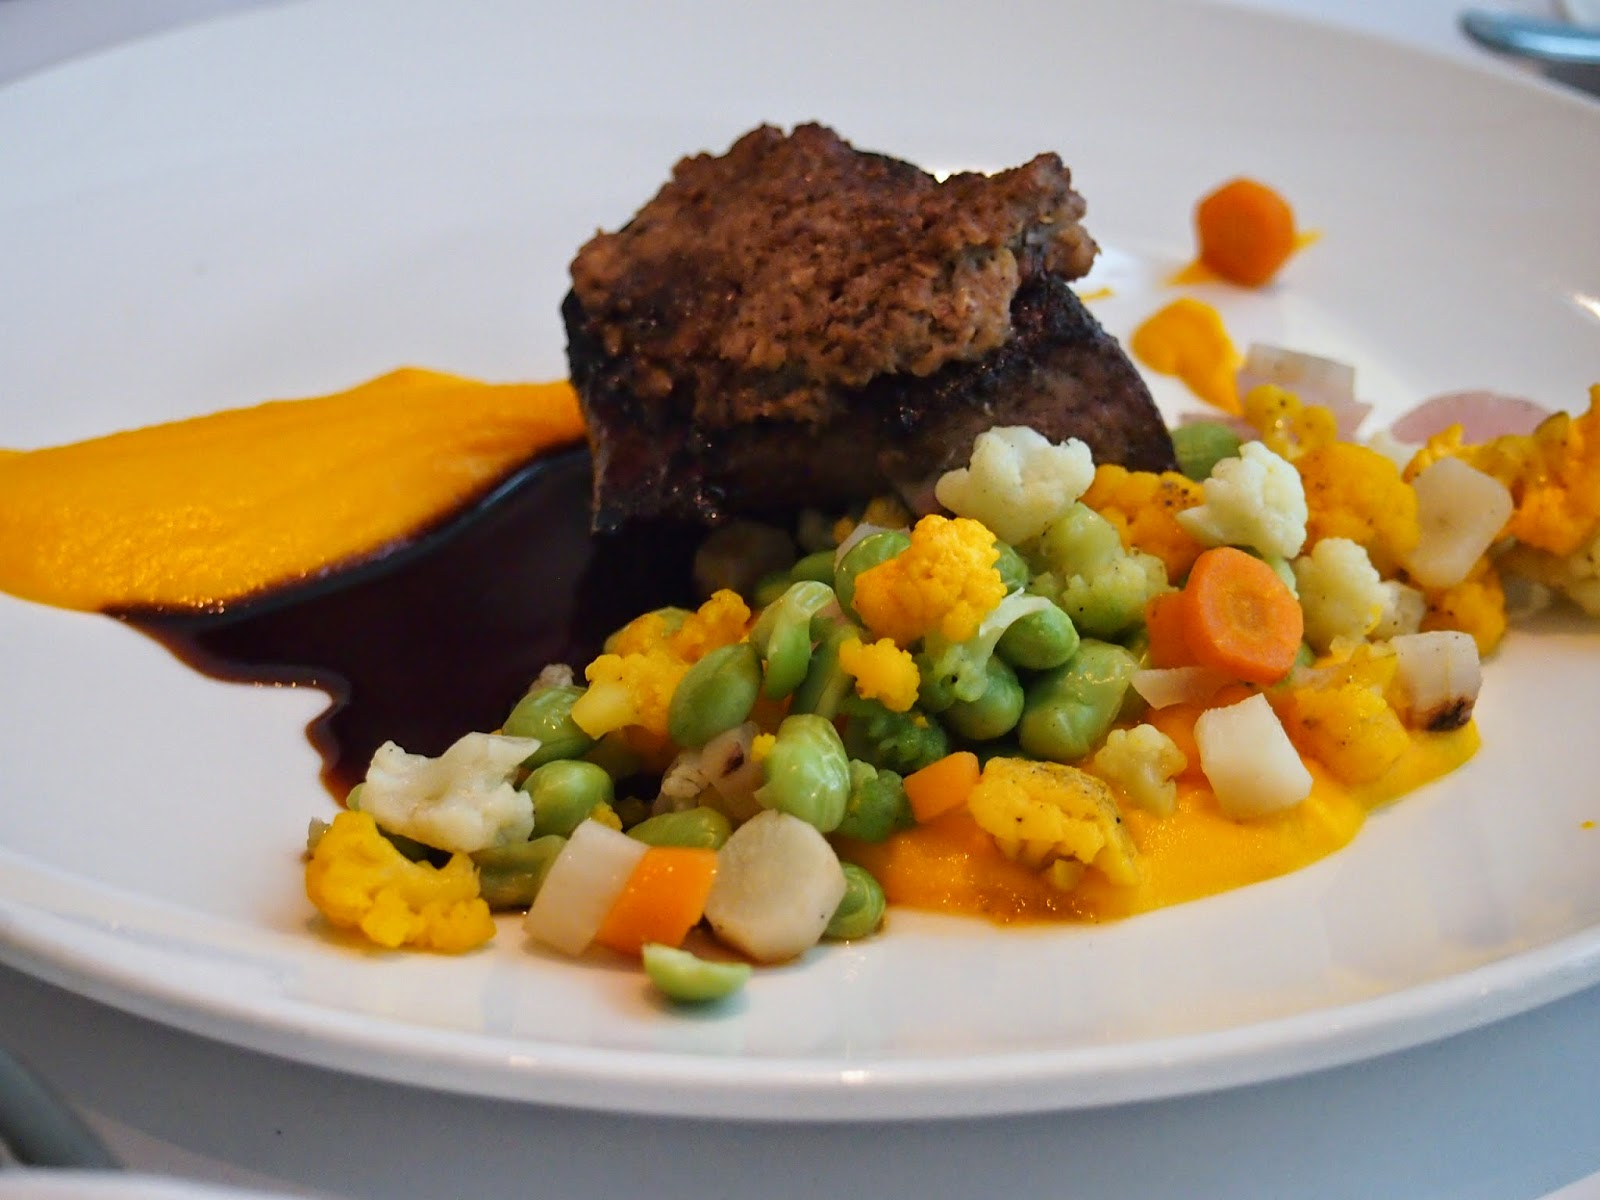 Dining at Musee des Beaux Arts Montreal Liver